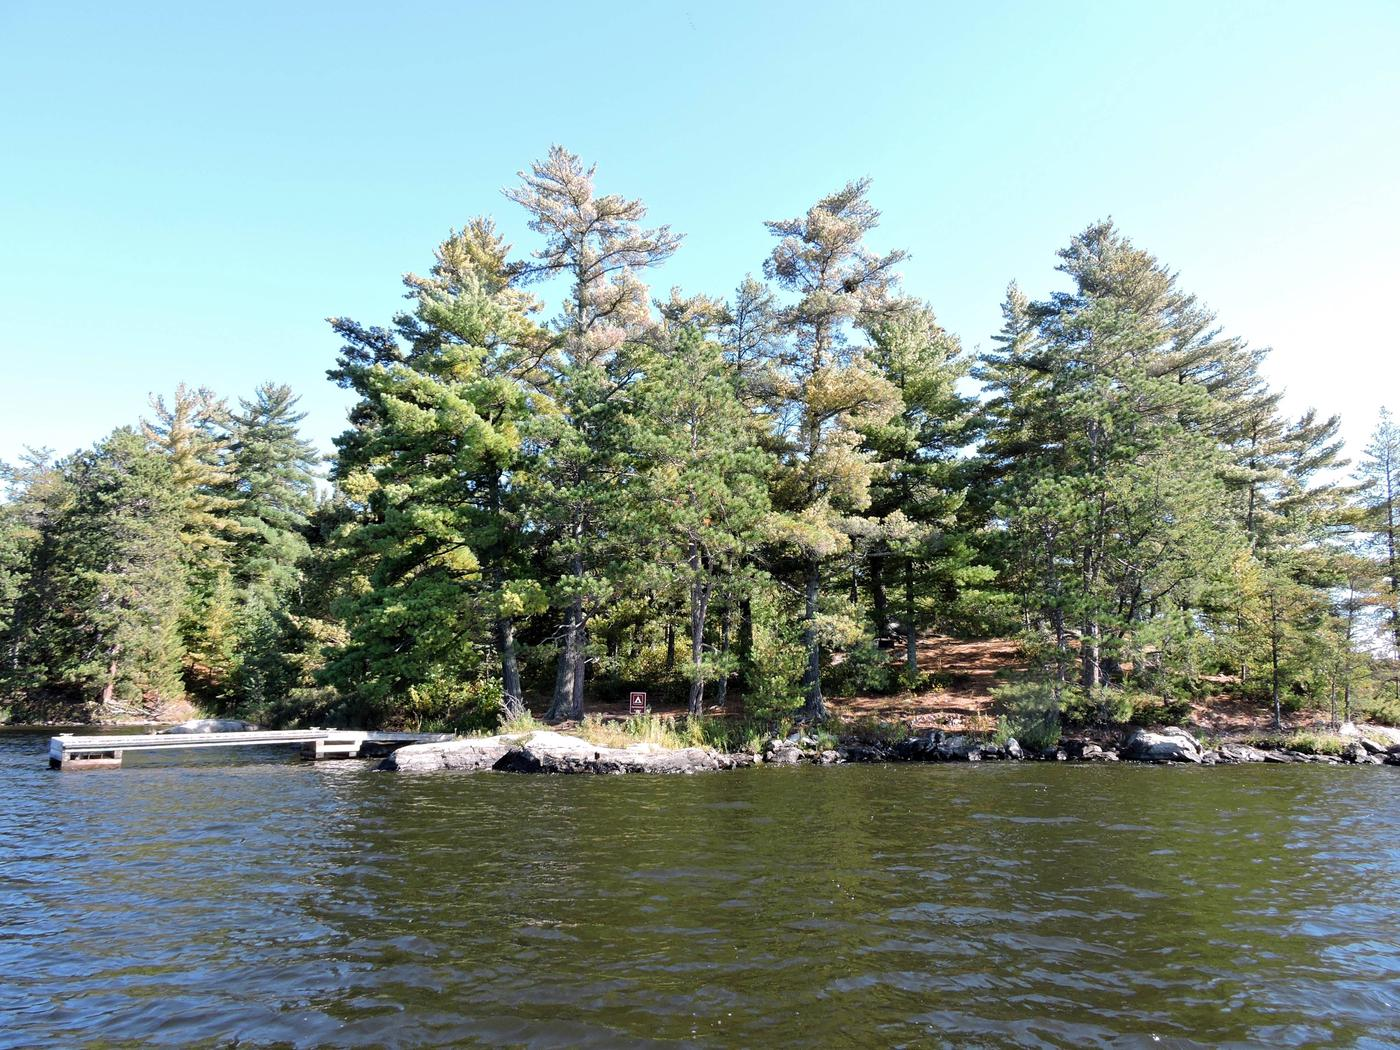 K25 - Peterson PointView of campsite from water